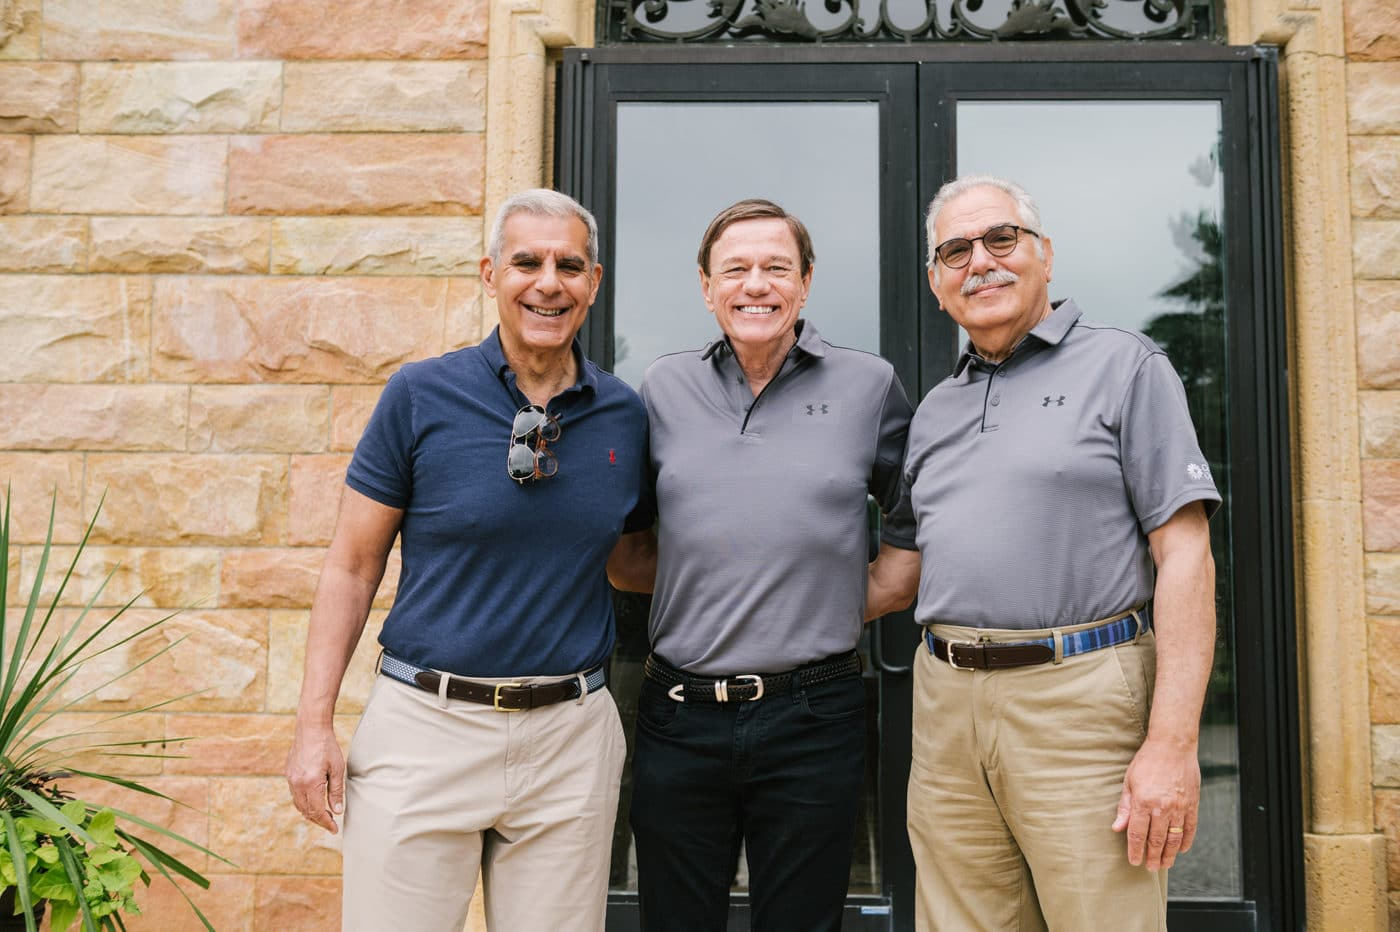 Community Options' President & CEO, Robert Stack, with Senator Joe Kyrillos and Community Options Enterprises' Chairman, Philip Lian, at the annual iMatter Spring Golf Classic in support of people with disabilities.